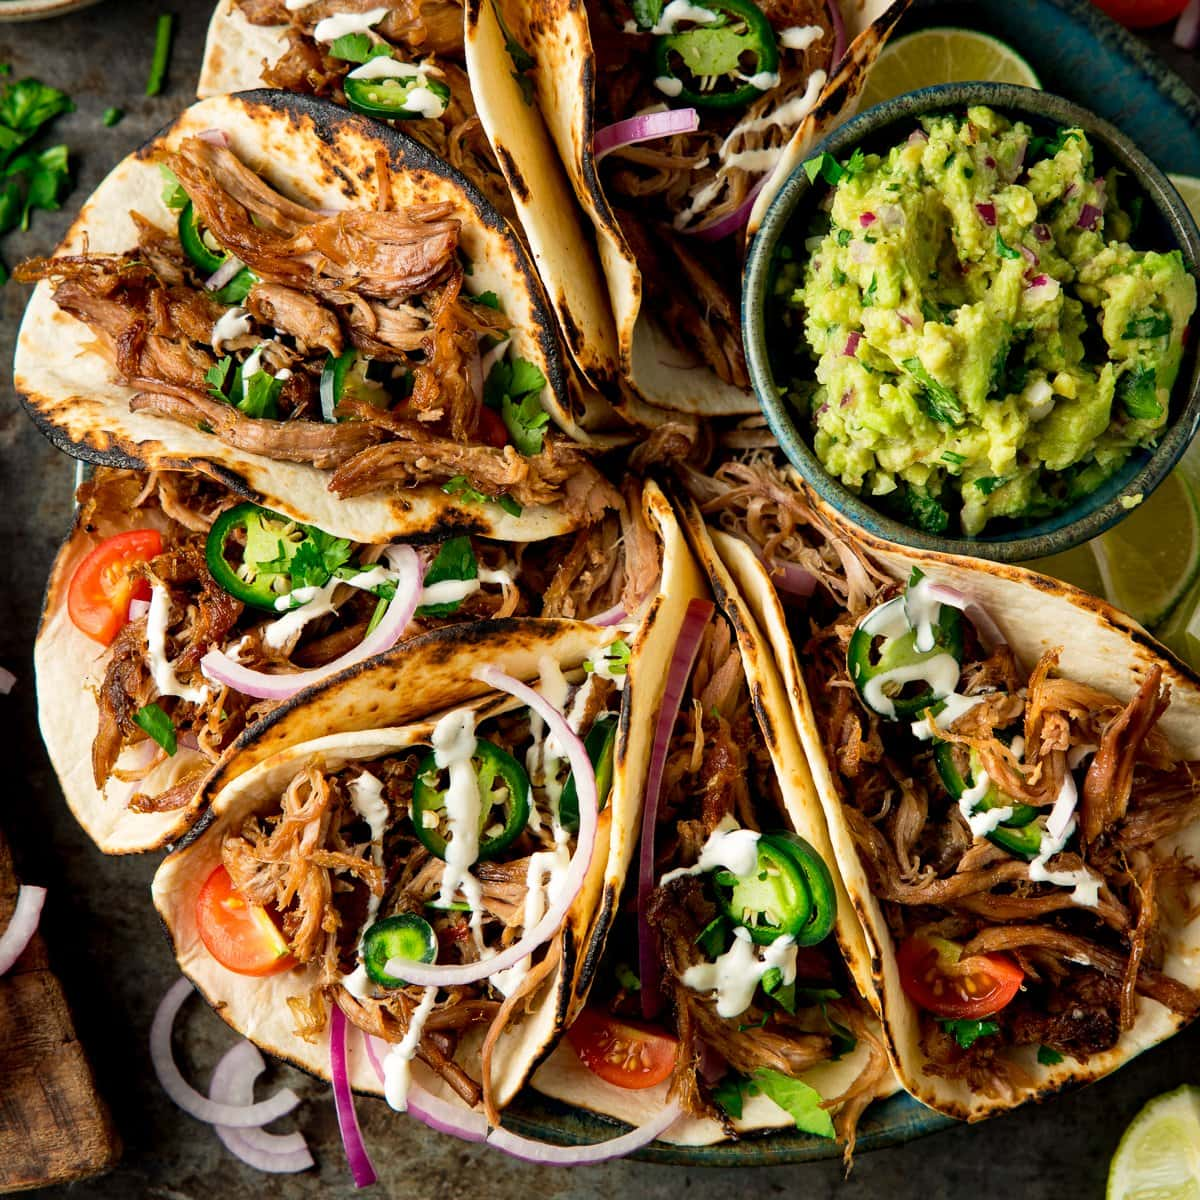 Square image of a plate of Lamb Barbacoa Carnita Tacos with a bowl of guacamole